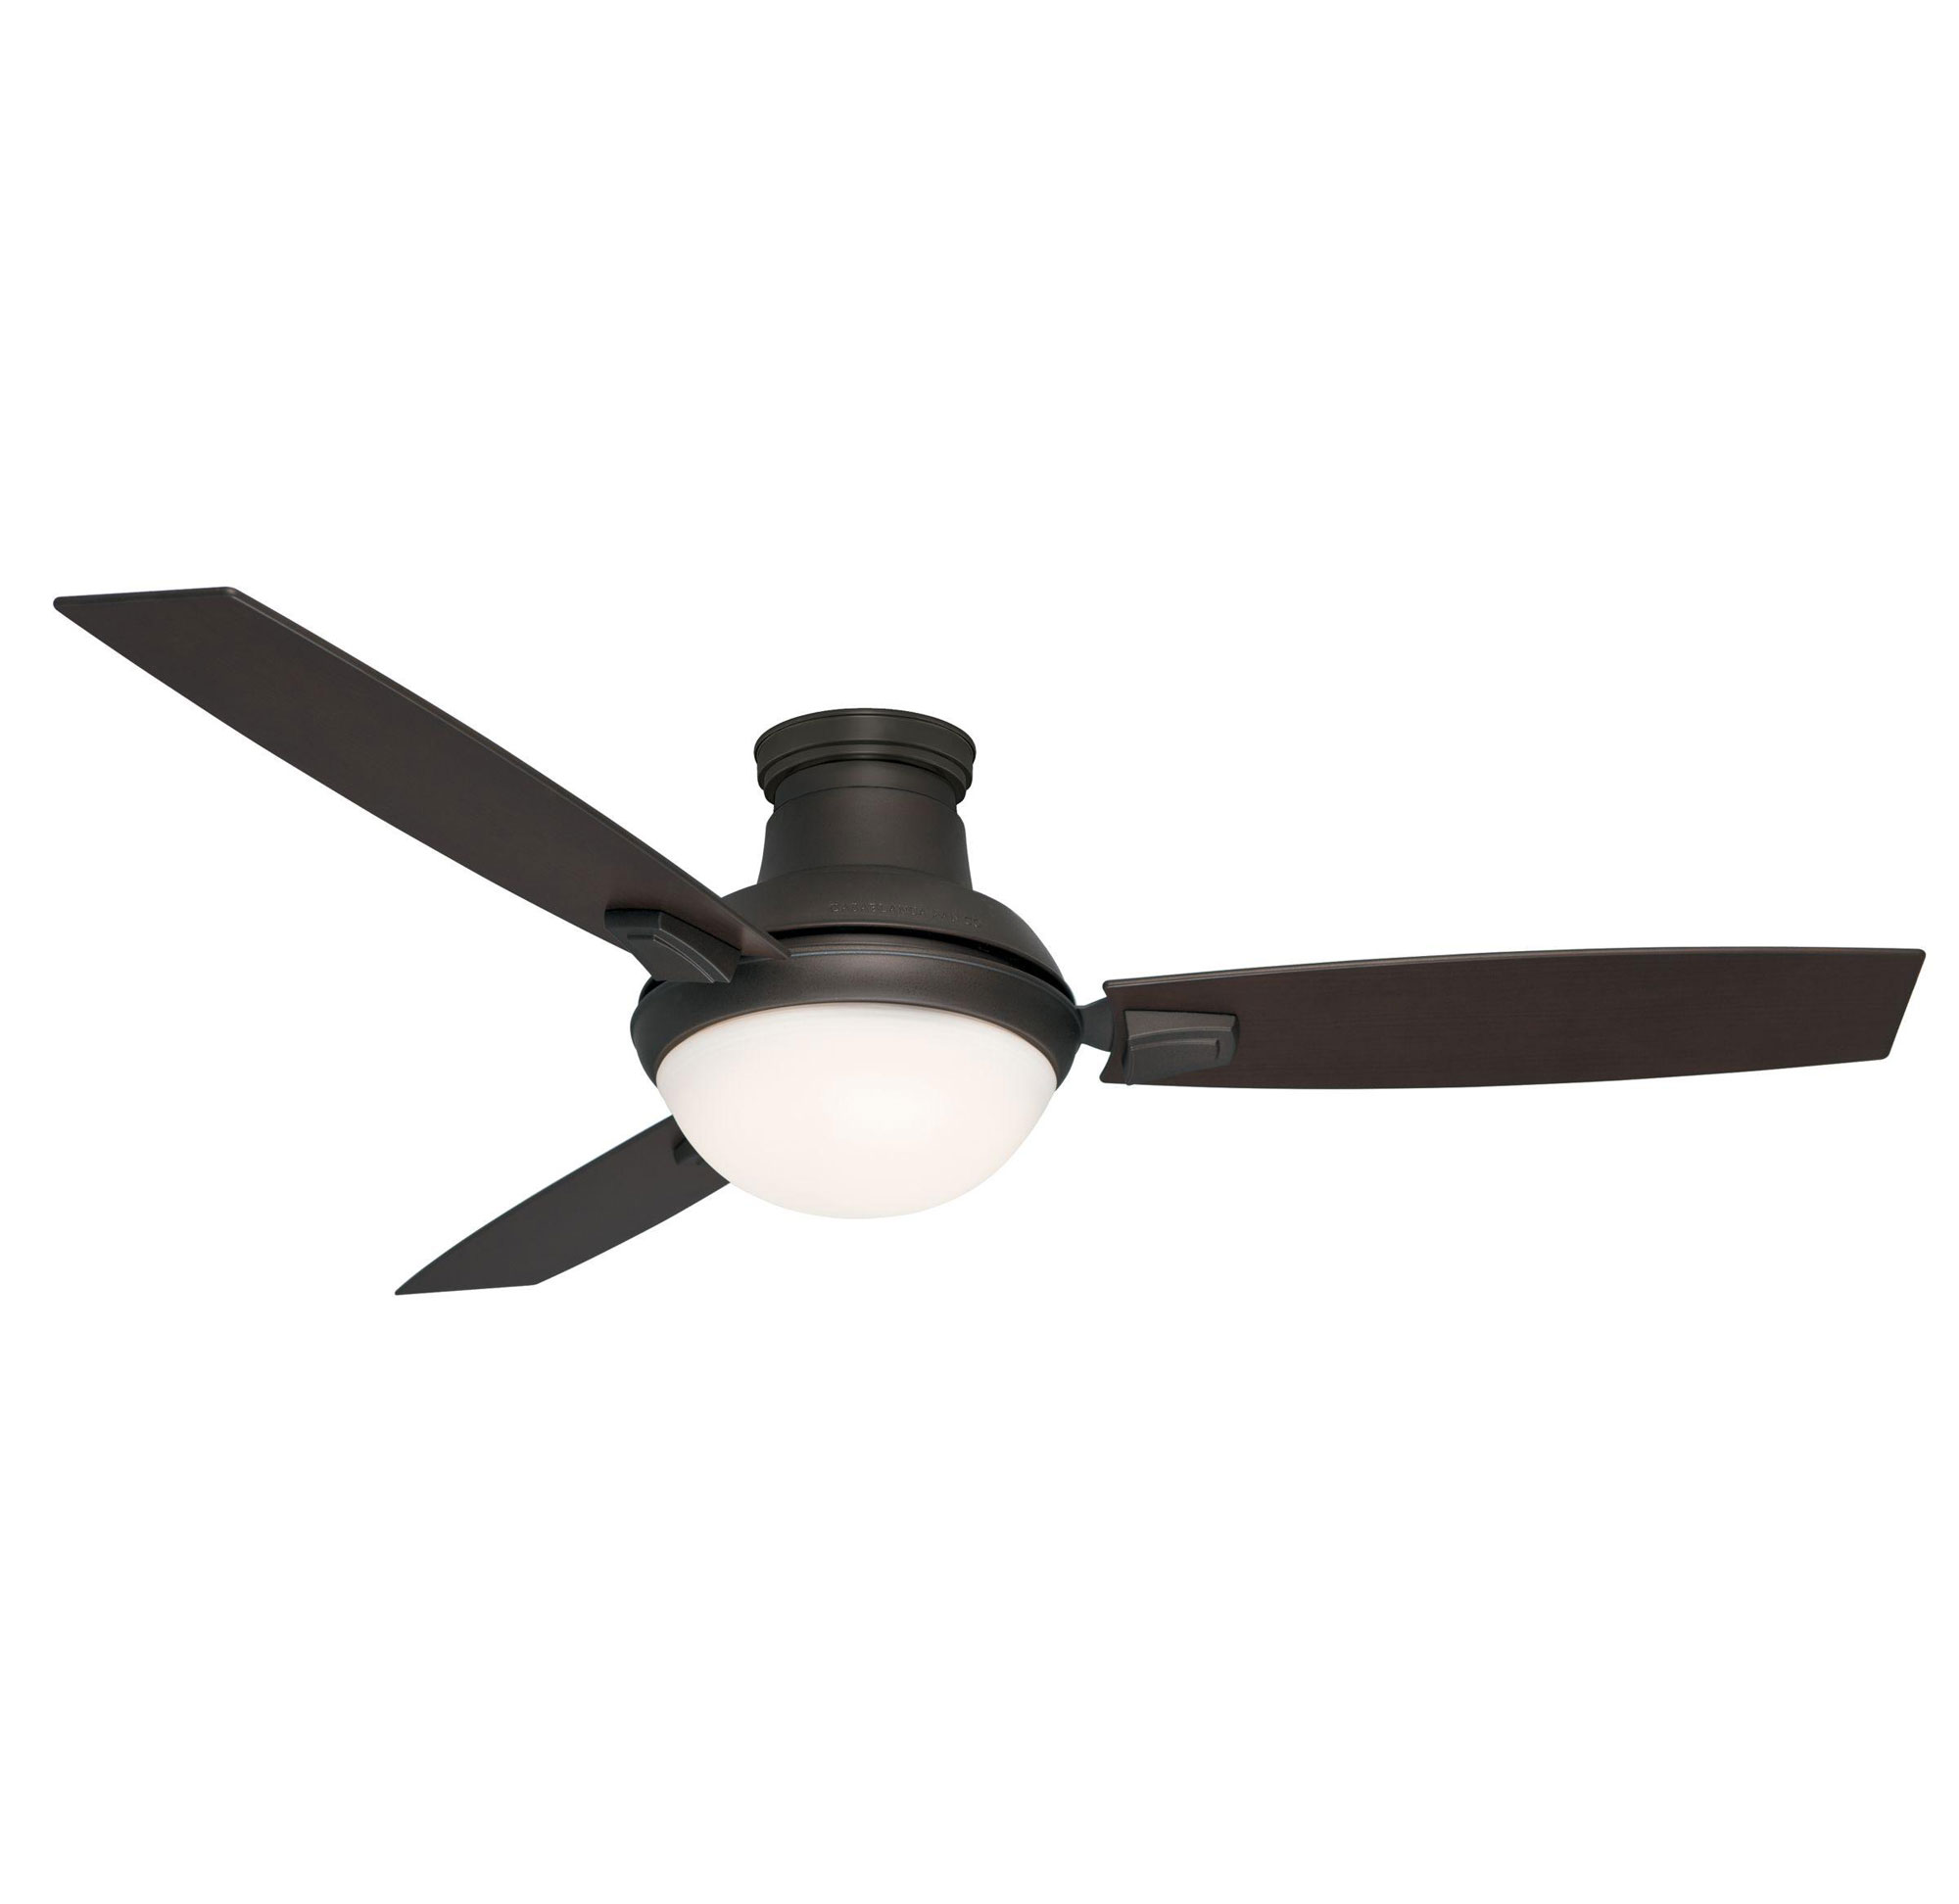 hei fan breeze bronze wid cool qlt p ceiling prod